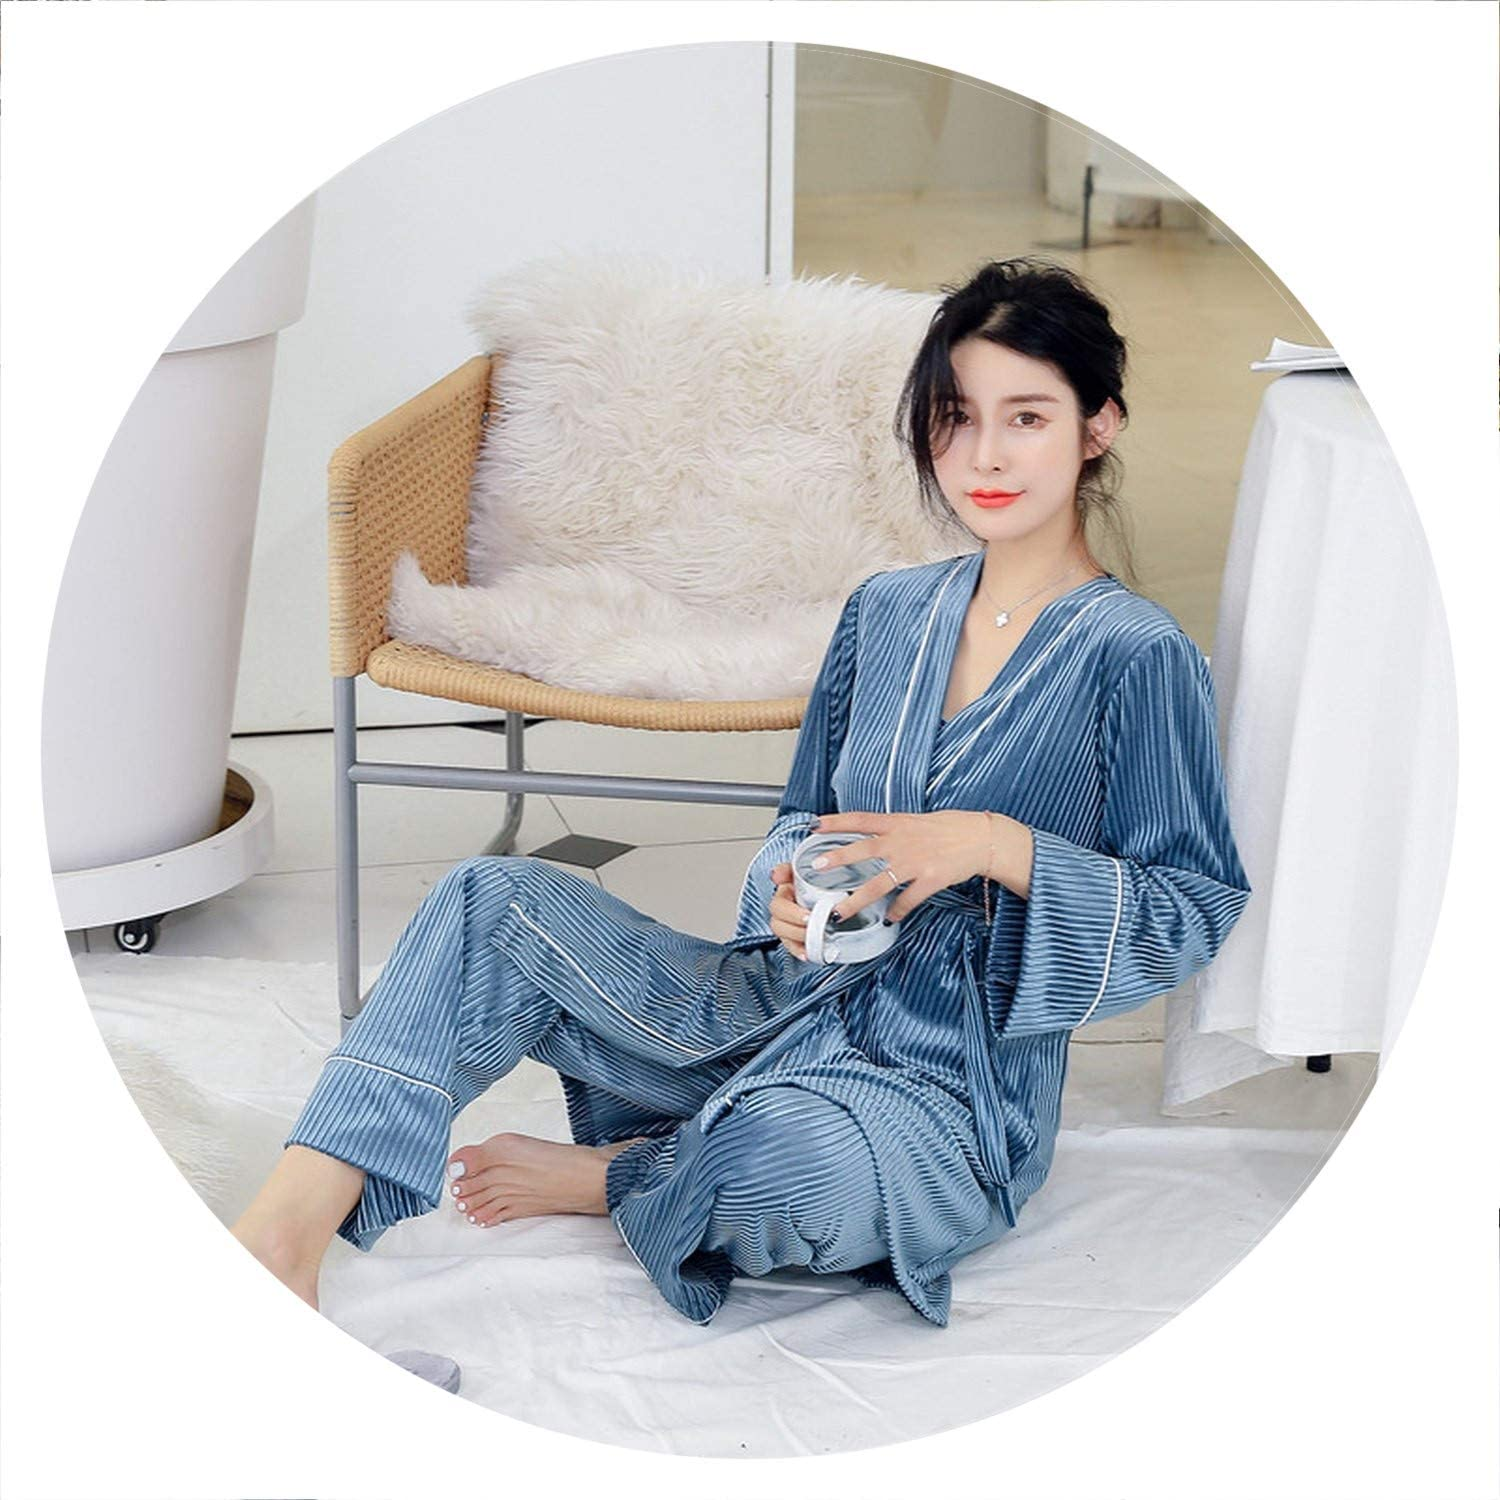 100Expectations 3 Pieces Warm Winter Pajamas Sets Women Robe Sleepwear Long Sleeve Nightwear Pant Suit